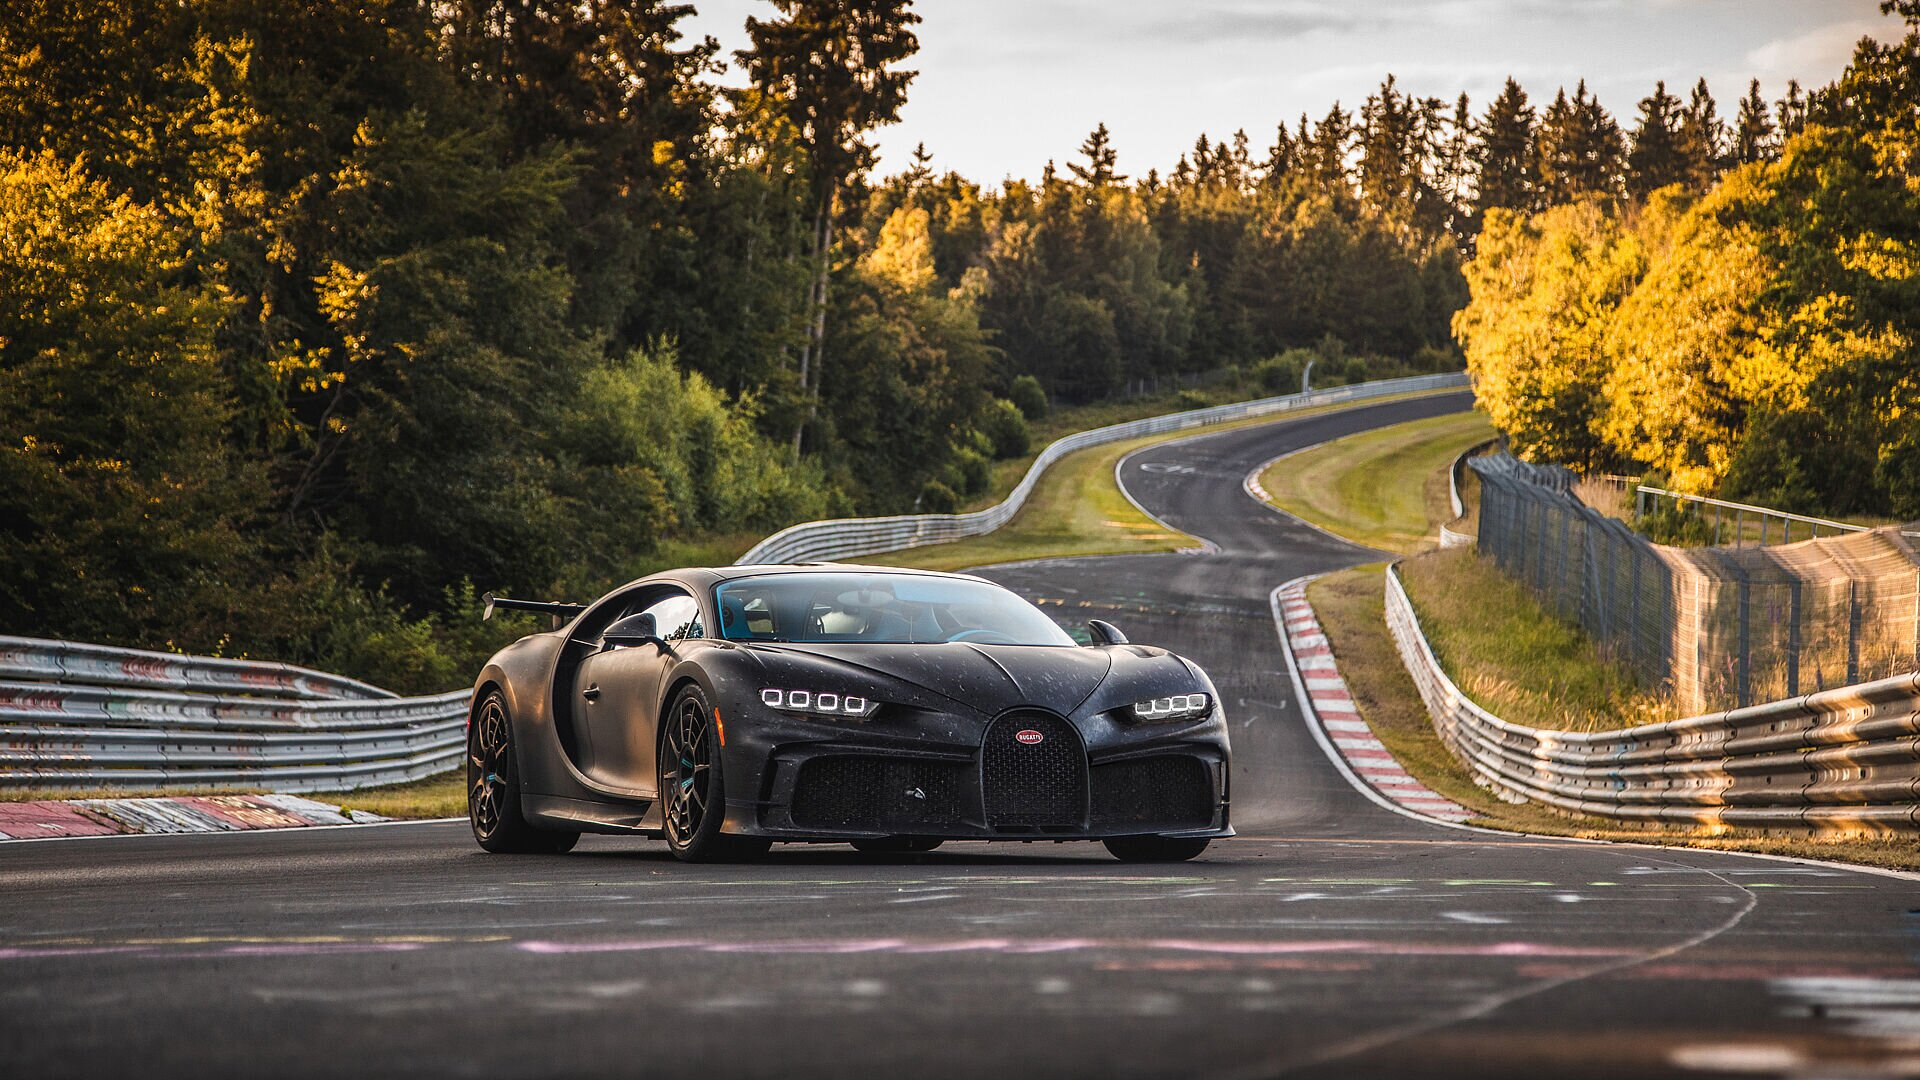 Chiron Pur Sport – final handling tests on the Nordschleife - Image 2